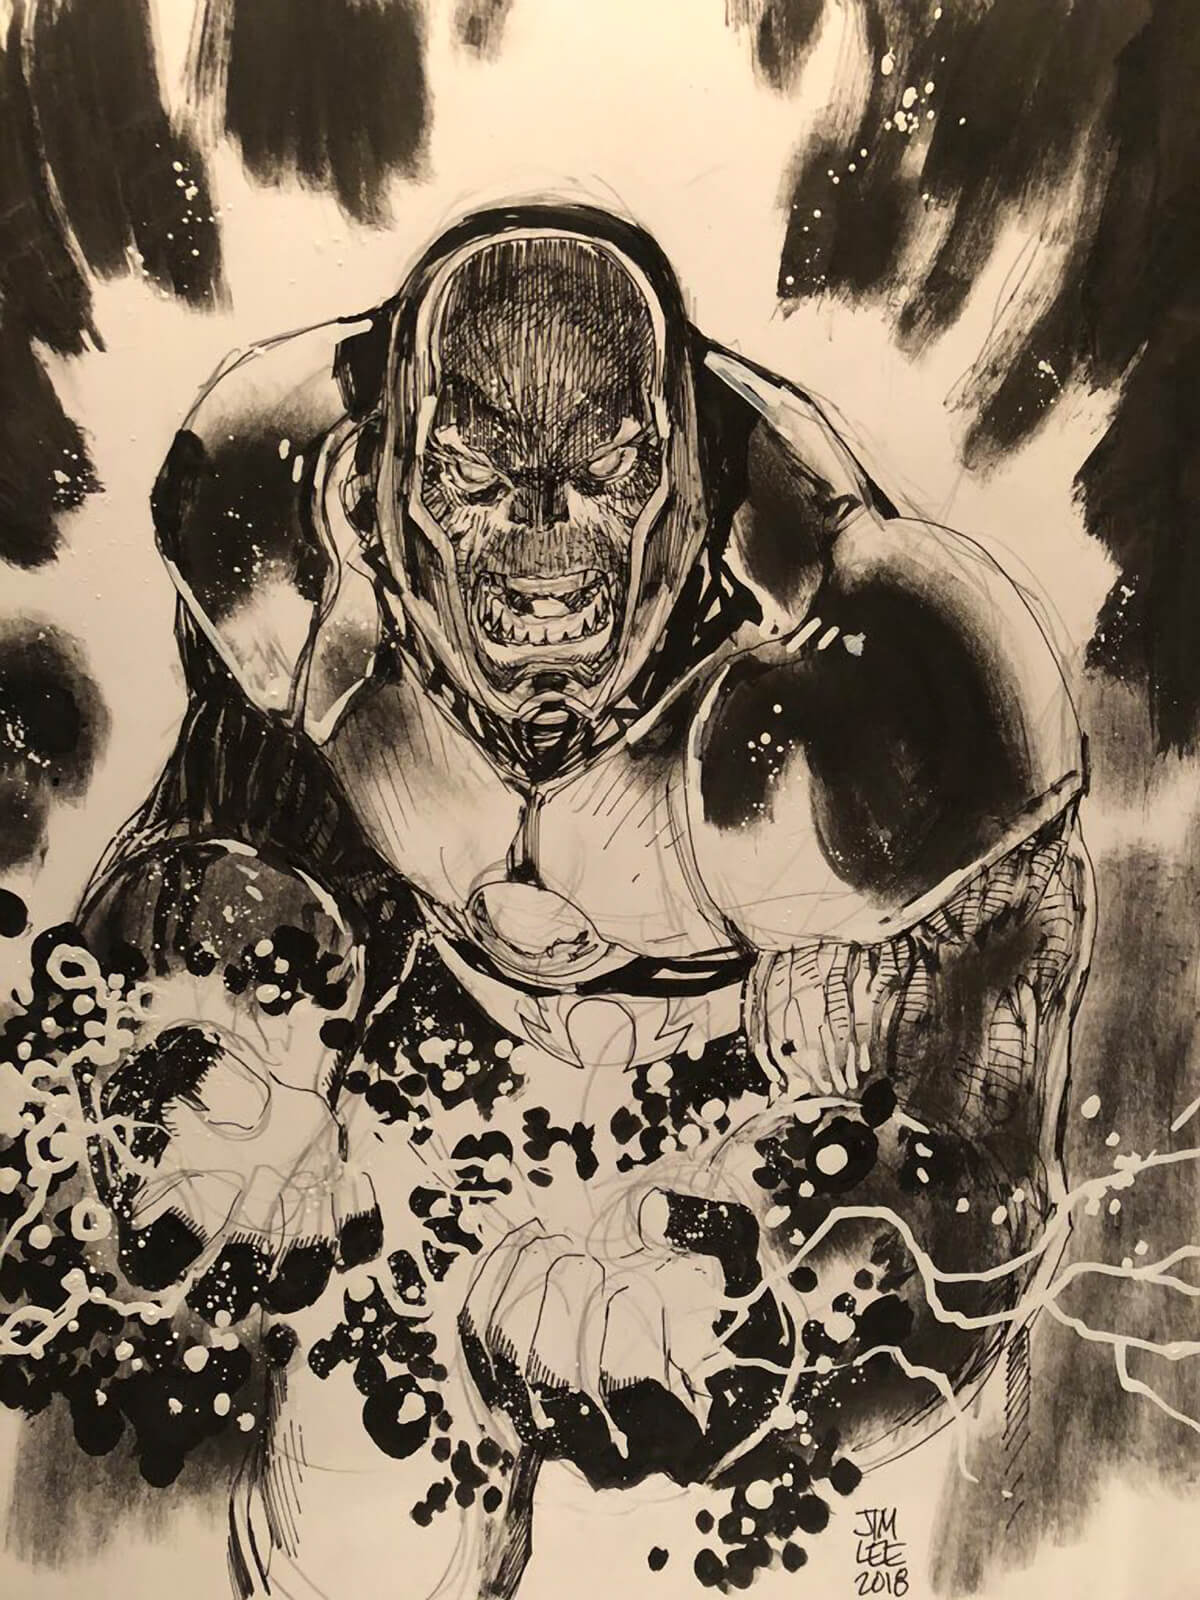 Darkseid by Jim Lee